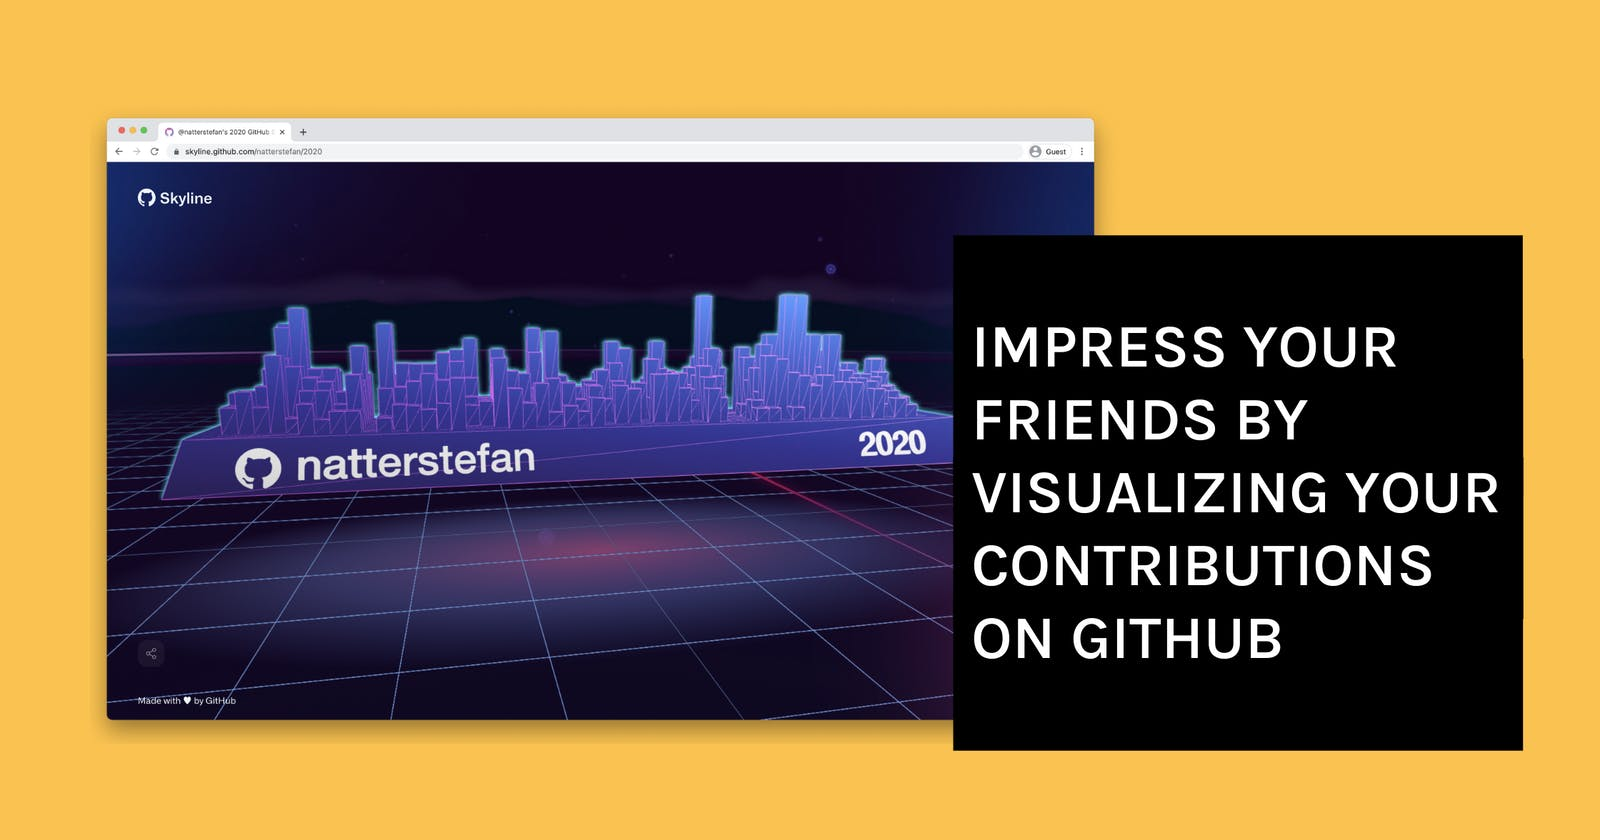 Impress Your Friends By Visualizing Your Contributions on GitHub